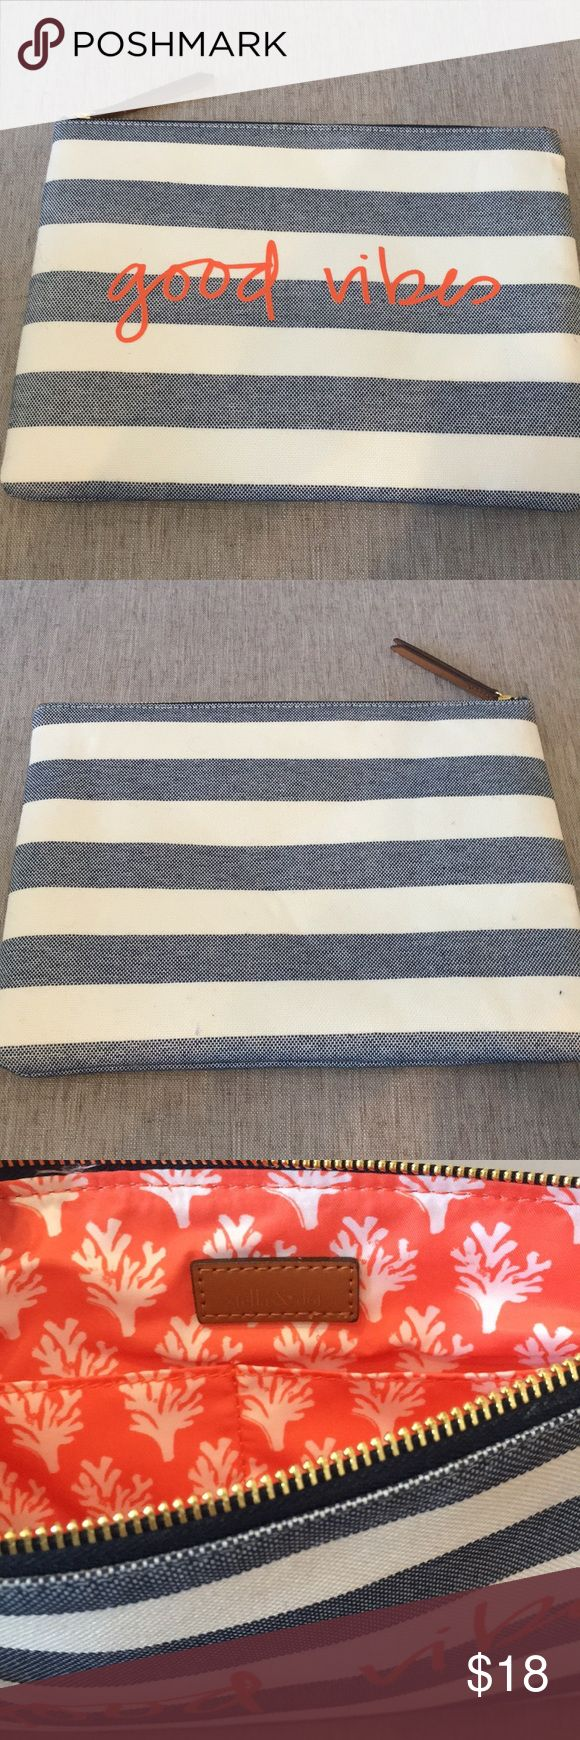 Stella & Dot Clutch Stella & Dot top zipper clutch. Only used once! Blue and white canvas material, with 'good vibes' written in orange on the front. Two inside pockets. There is a small stain on the inside shown in the last photo, but no stains or marks on the outside. Measures 11 inches across and 8 1/2 inches tall. Stella & Dot Bags Clutches & Wristlets